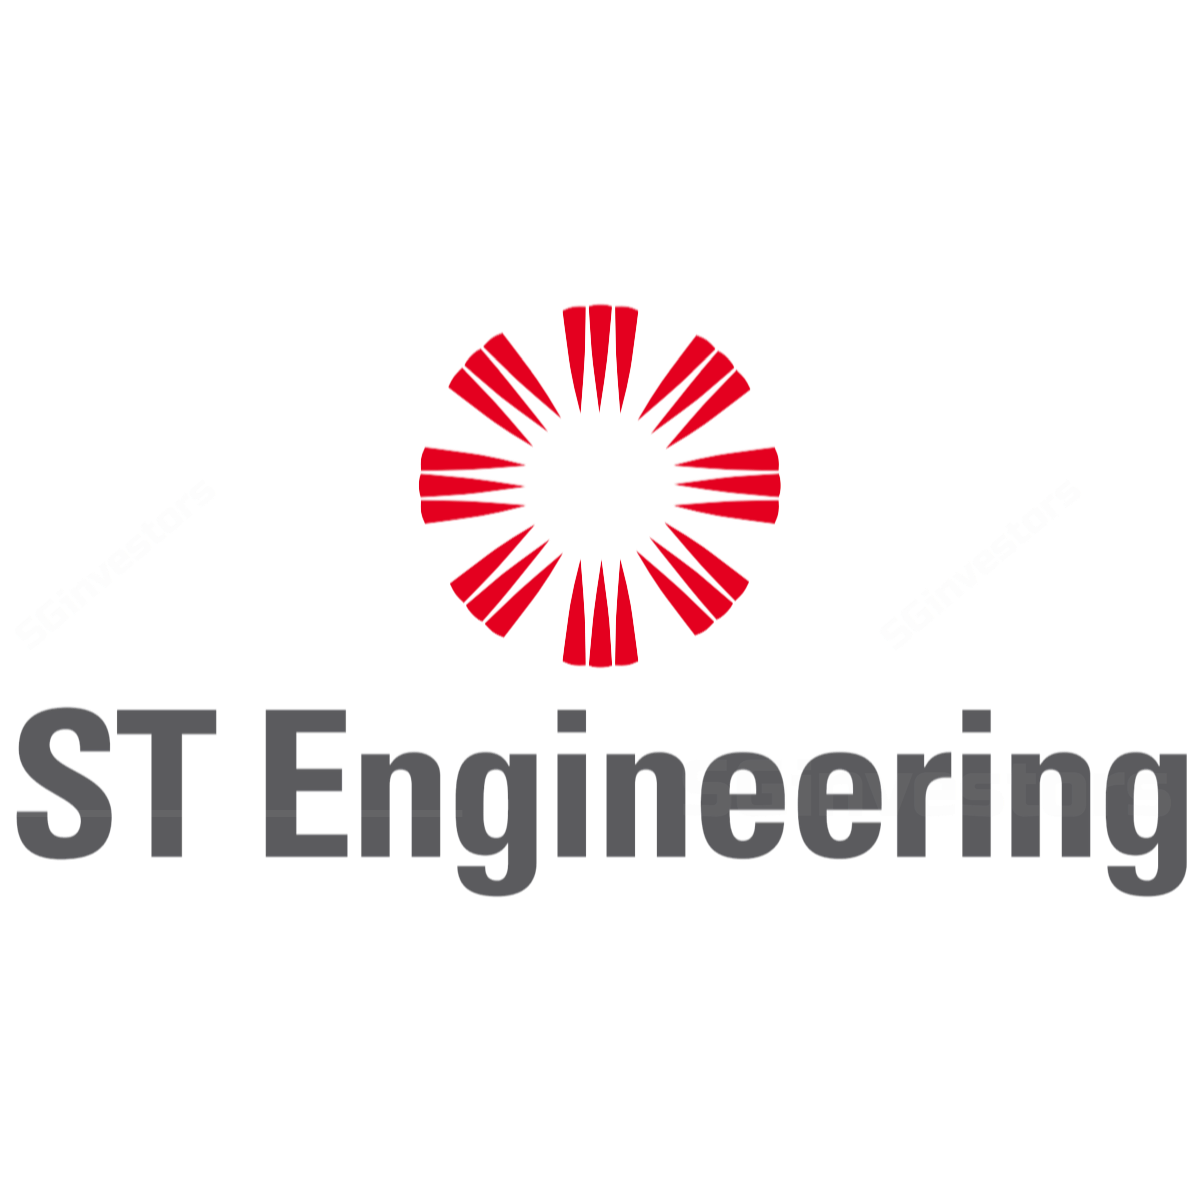 ST Engineering - DBS Vickers 2017-11-09: No Visibility On Near-term Catalysts